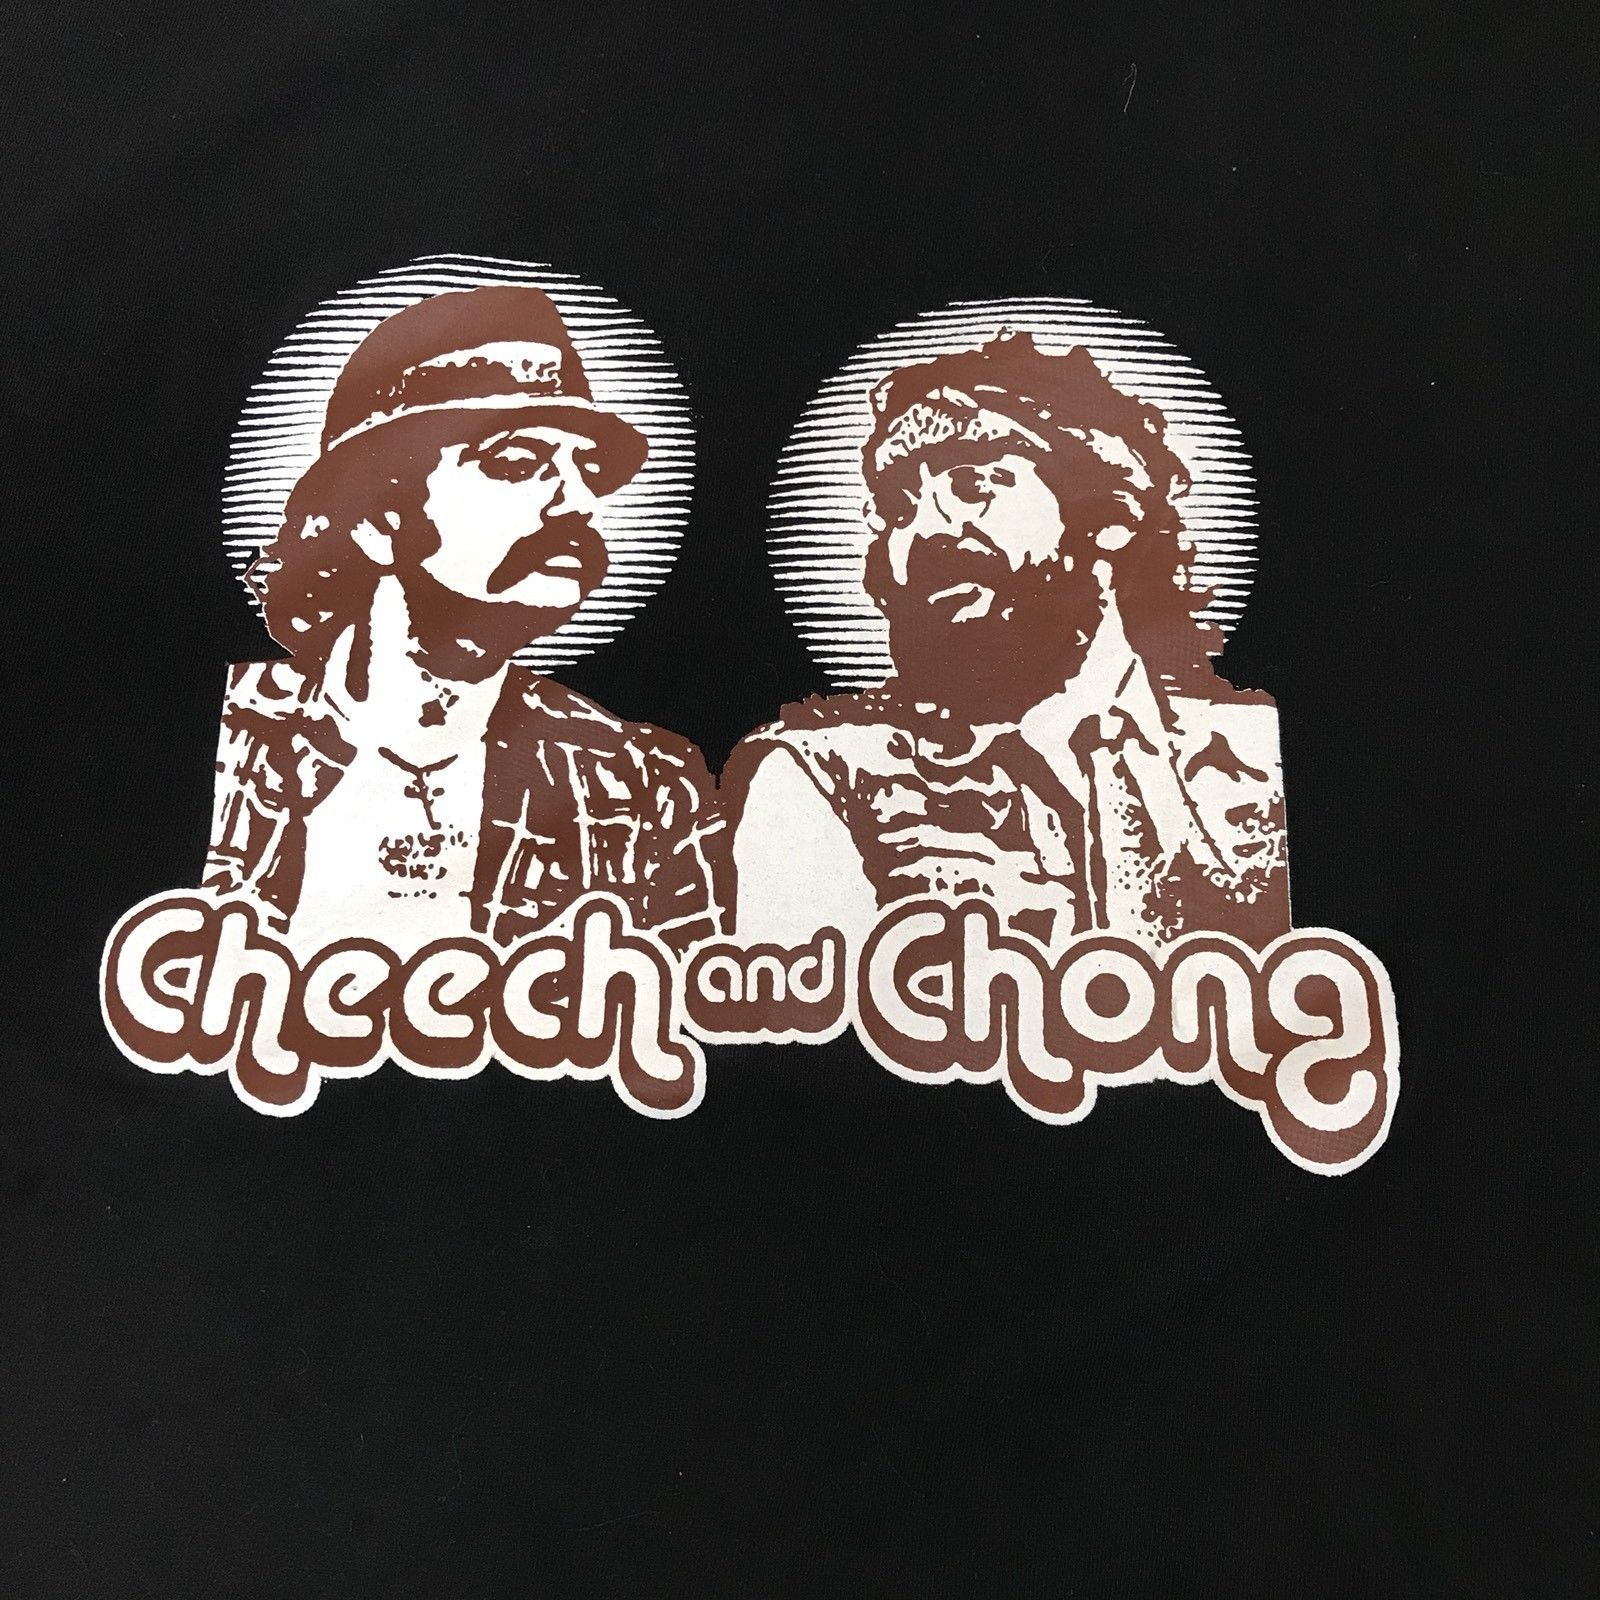 Cheech And Chong Up In Smoke T Shirt Black With Brown Graphic Men's Size XL